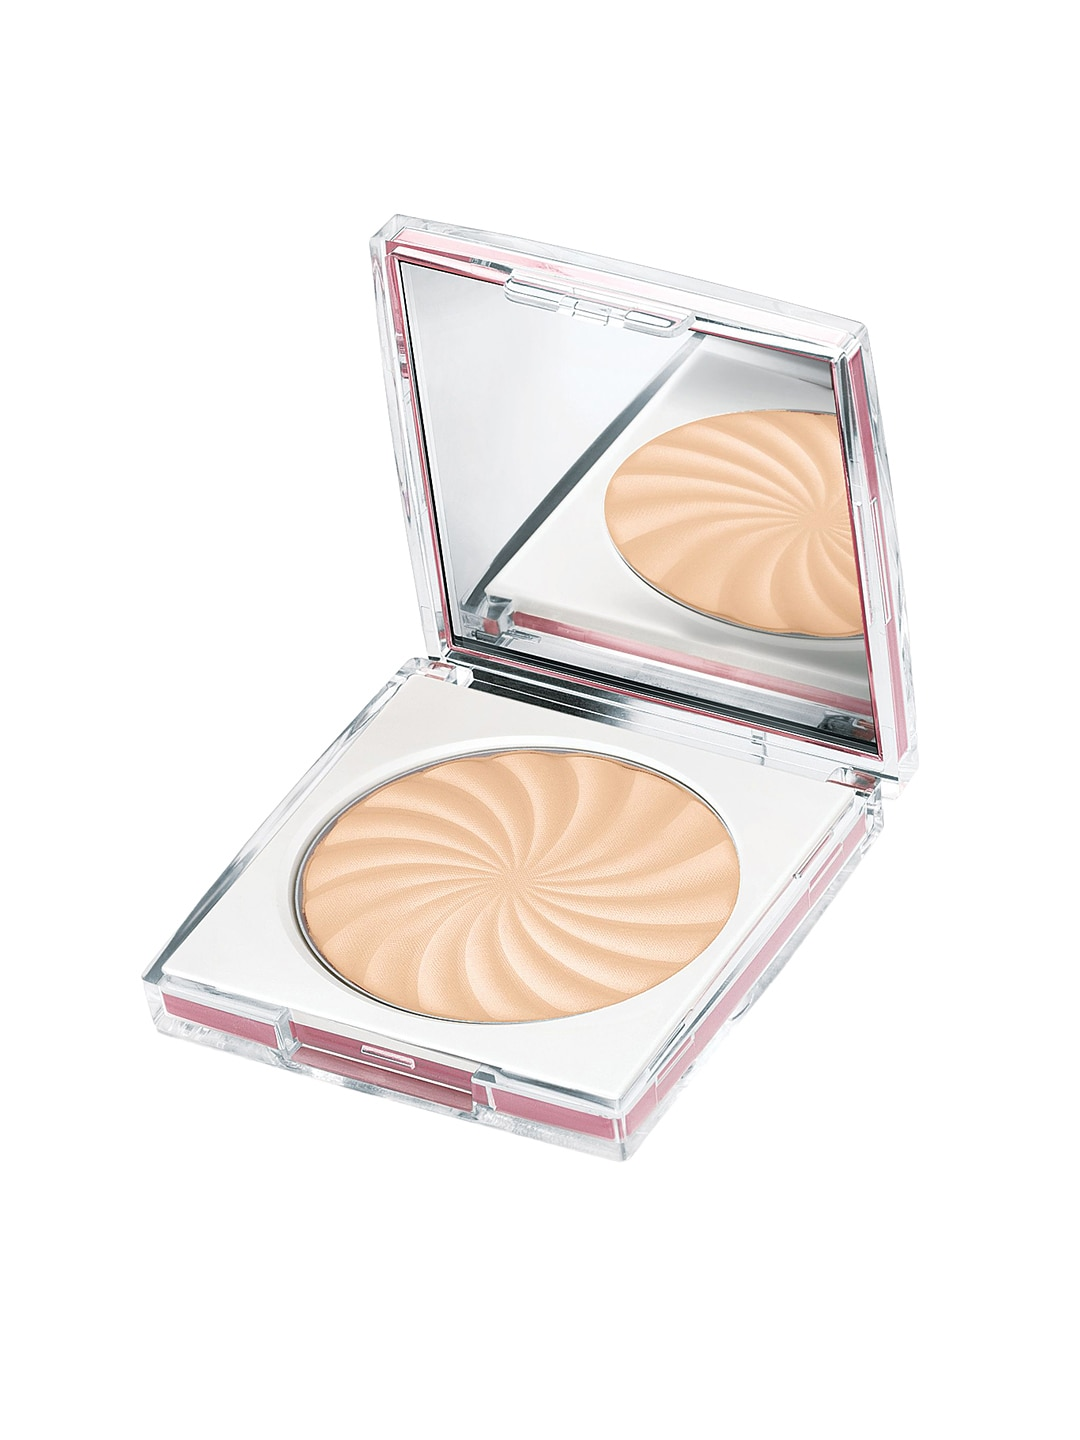 Lotus Herbals Royal Ivory Purestay Face Powder C3 image